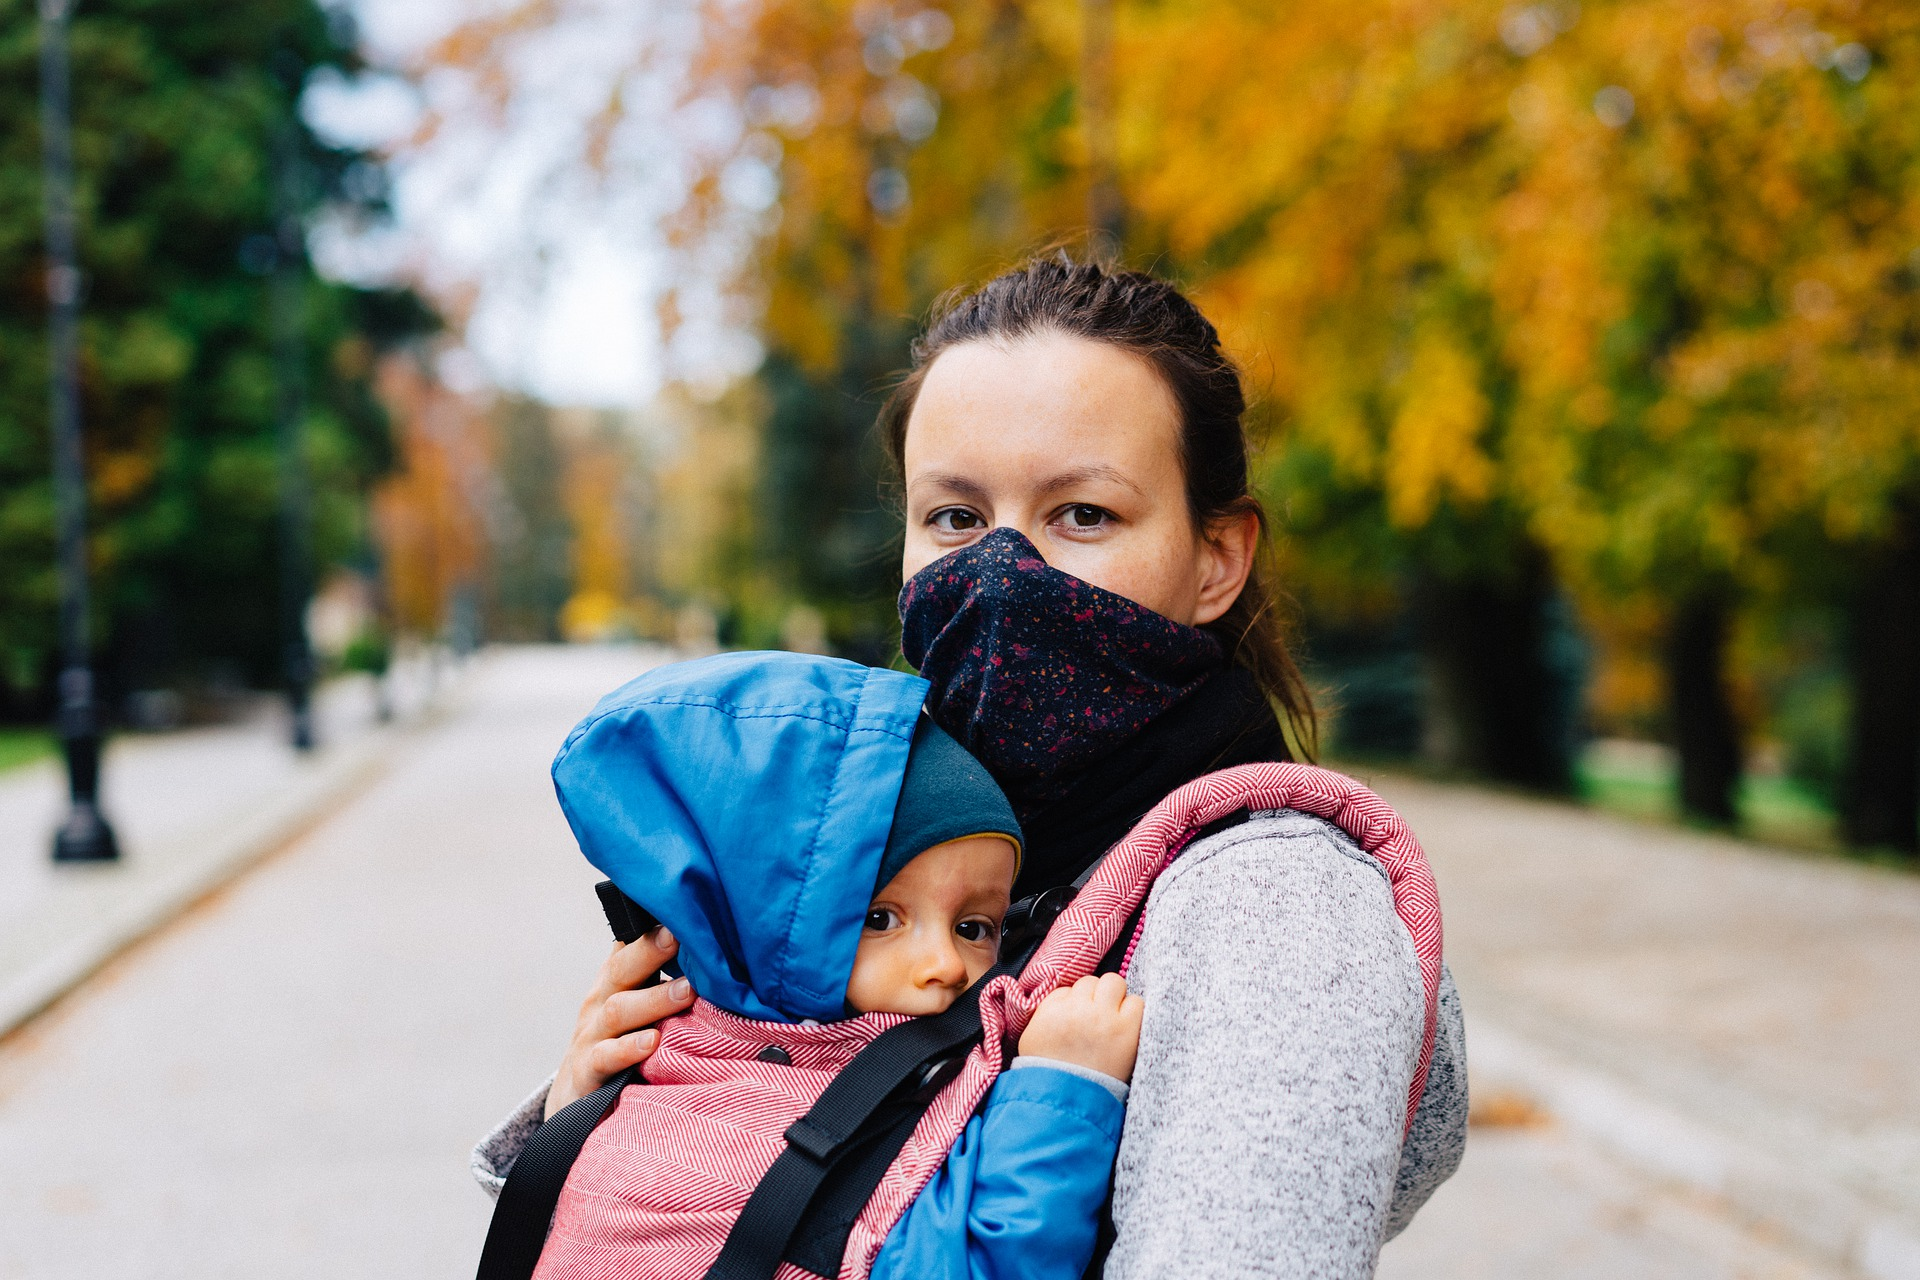 Woman wearing COVID-19 mask and holding a baby.